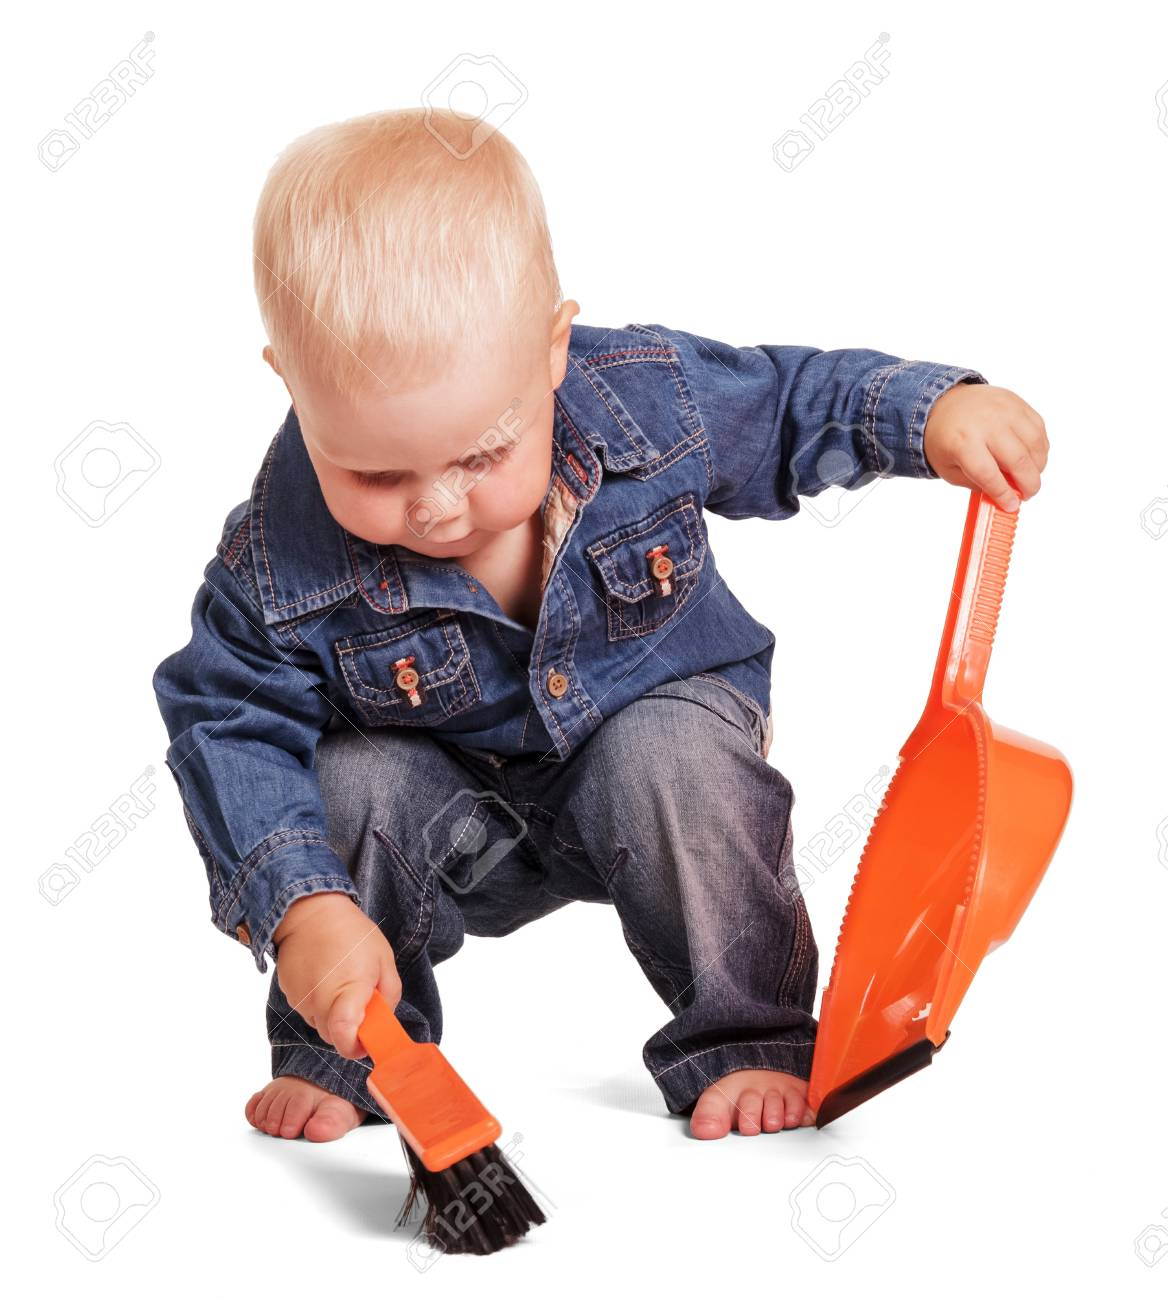 eea9dc1d8d0 Cute little boy in a blue shirt and jeans, holding a dustpan and brush  sweeps